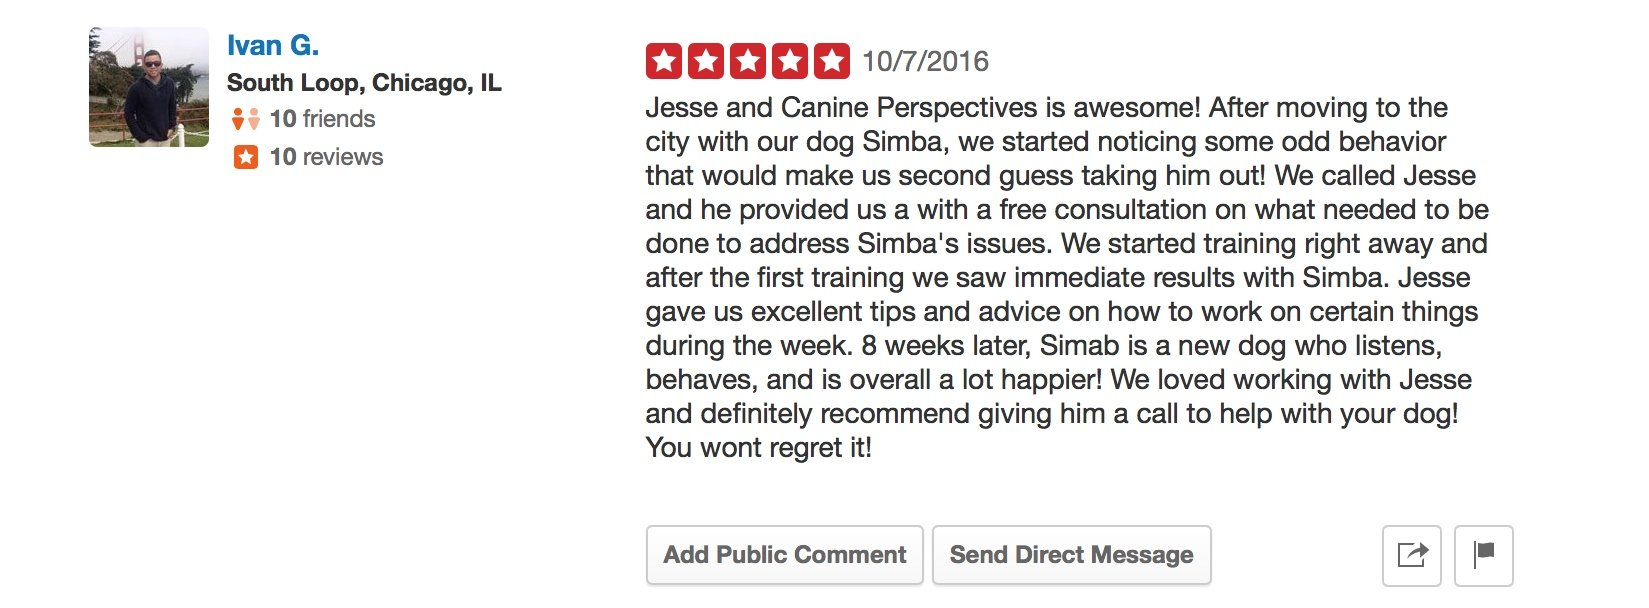 """Canine Perspective Yelp review """"Jesse and Canine Perspectives is awesome! After moving to the city with our dog Simba, we started noticing some odd behavior that would make us second guess taking him out! We called Jesse and he provided us a with a free consultation on what needed to be done to address Simba's issues. We started training right away and after the first training we saw immediate results with Simba. Jesse gave us excellent tips and advice on how to work on certain things during the week. 8 weeks later, Simab is a new dog who listens, behaves, and is overall a lot happier! We loved working with Jesse and definitely recommend giving him a call to help with your dog! You wont regret it!"""""""